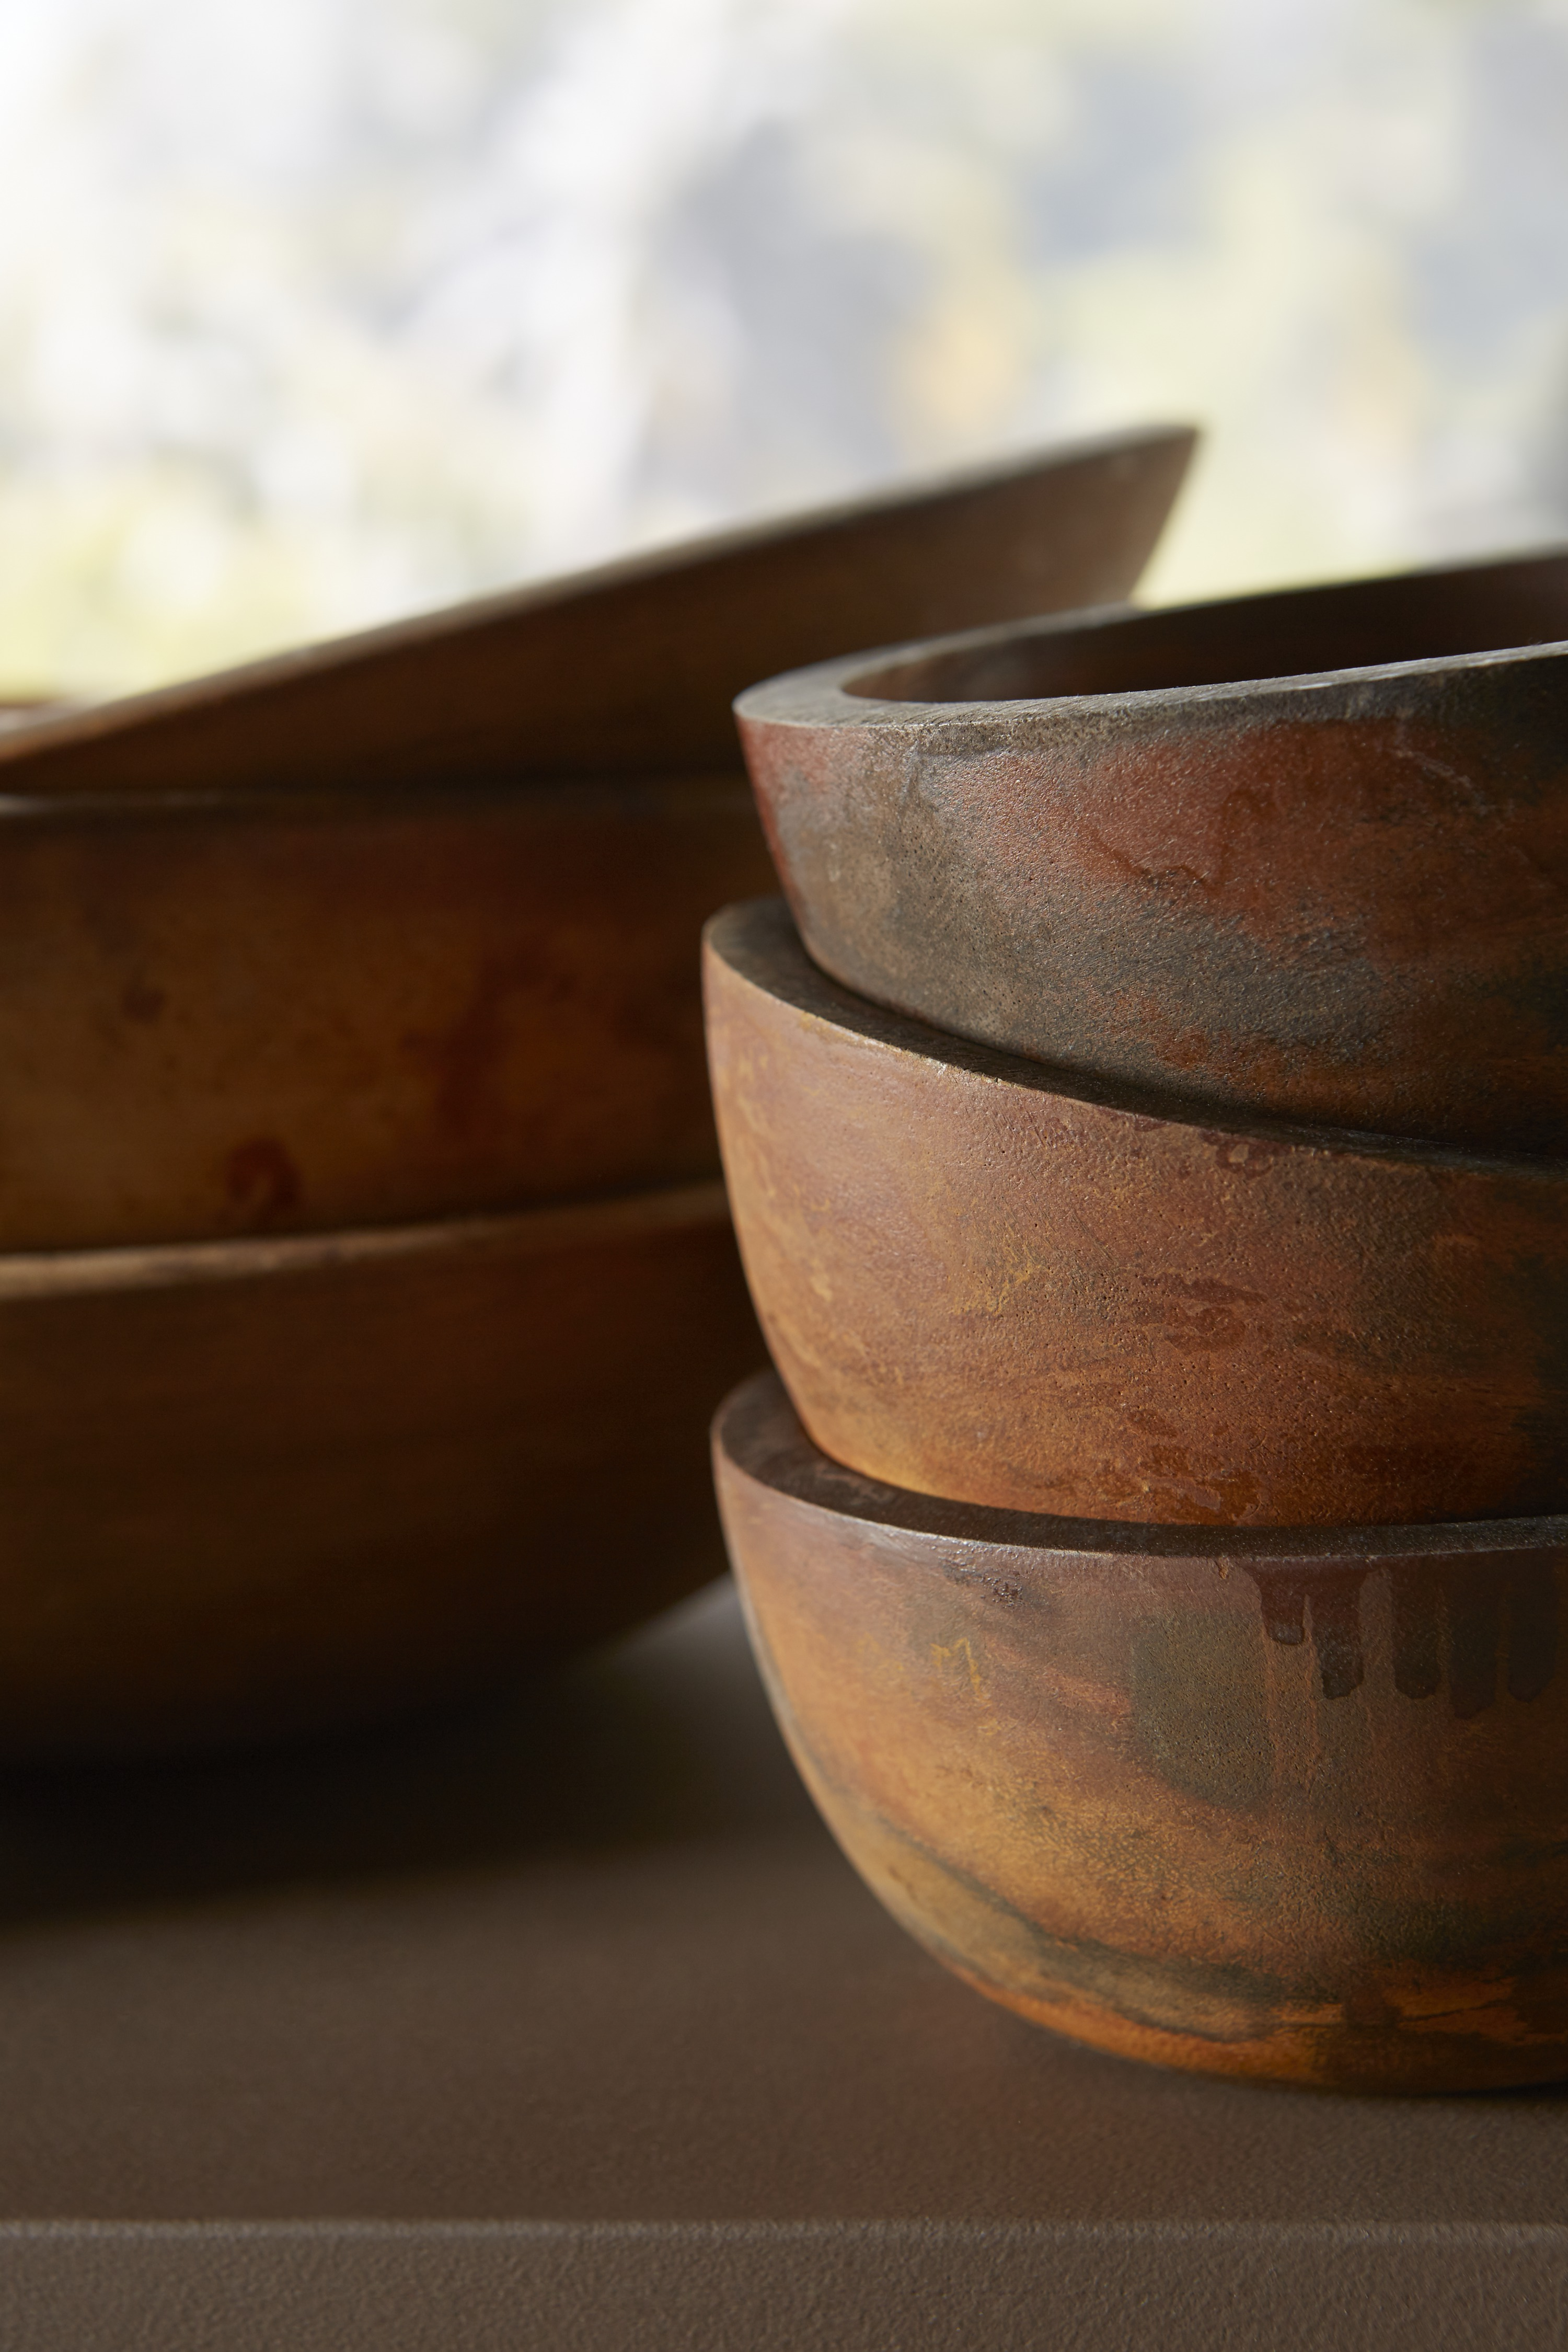 With rich colors, these wood bowls reinforce design elements used throughout the kitchen.